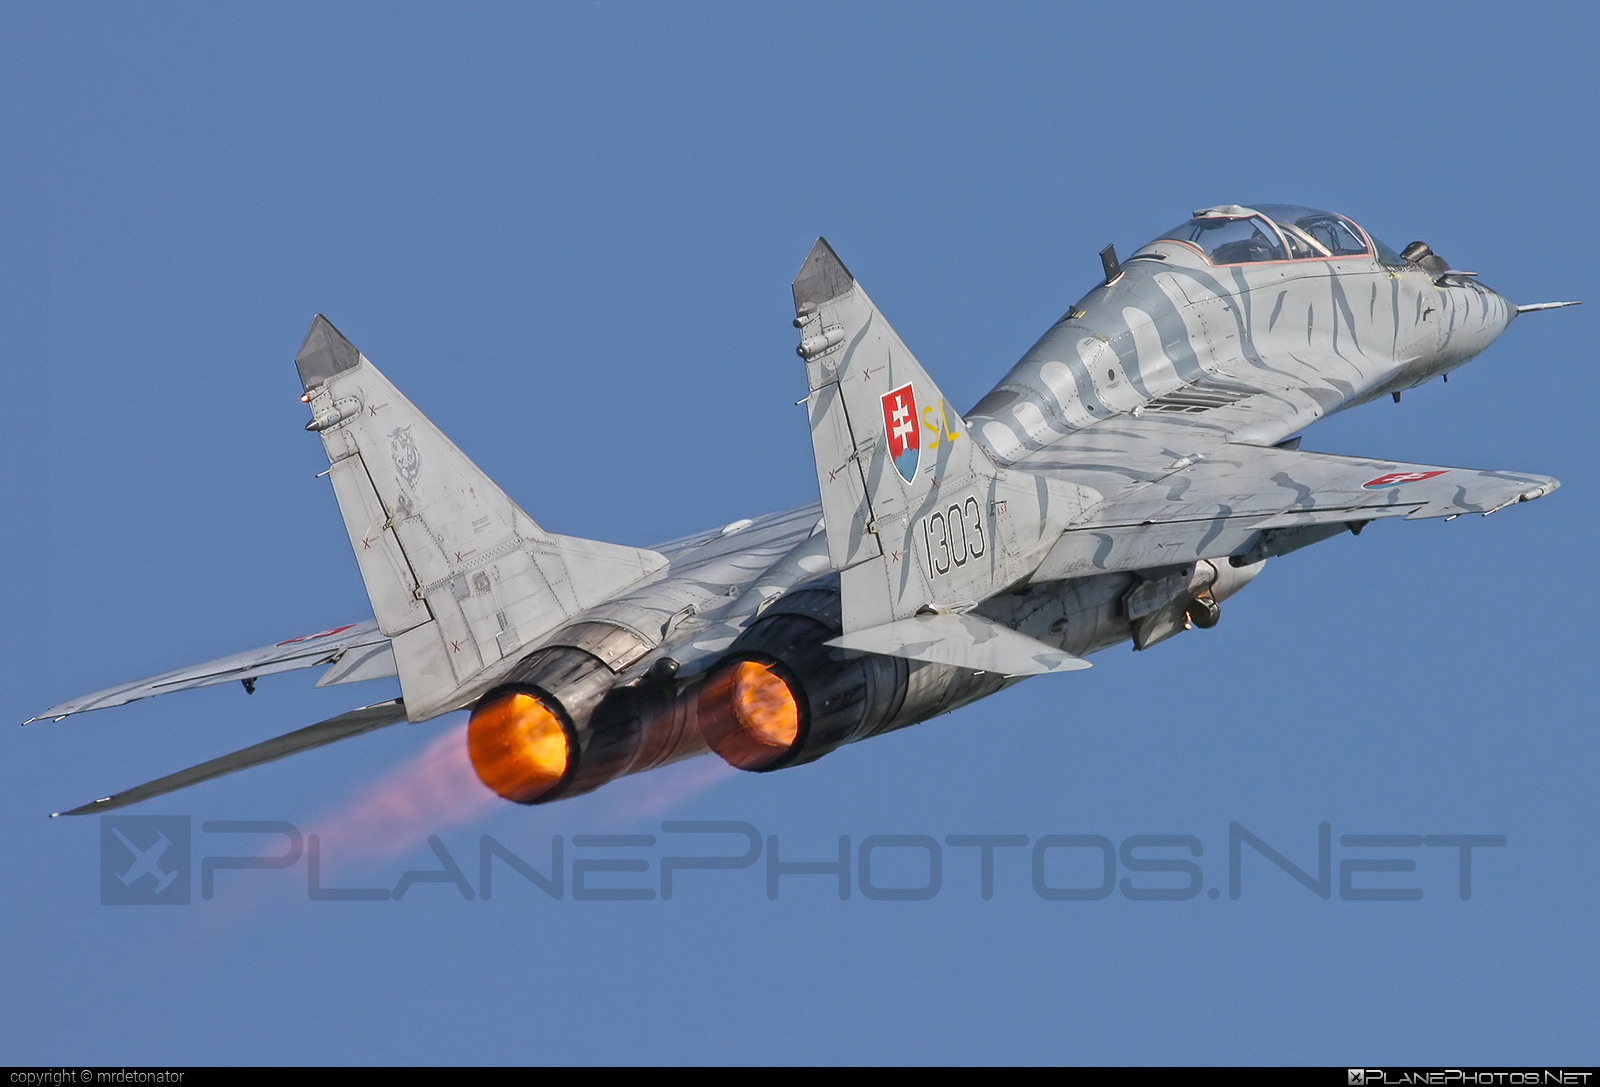 Mikoyan-Gurevich MiG-29UBS - 1303 operated by Vzdušné sily OS SR (Slovak Air Force) #mig #mig29 #mig29ubs #mikoyangurevich #slovakairforce #vzdusnesilyossr